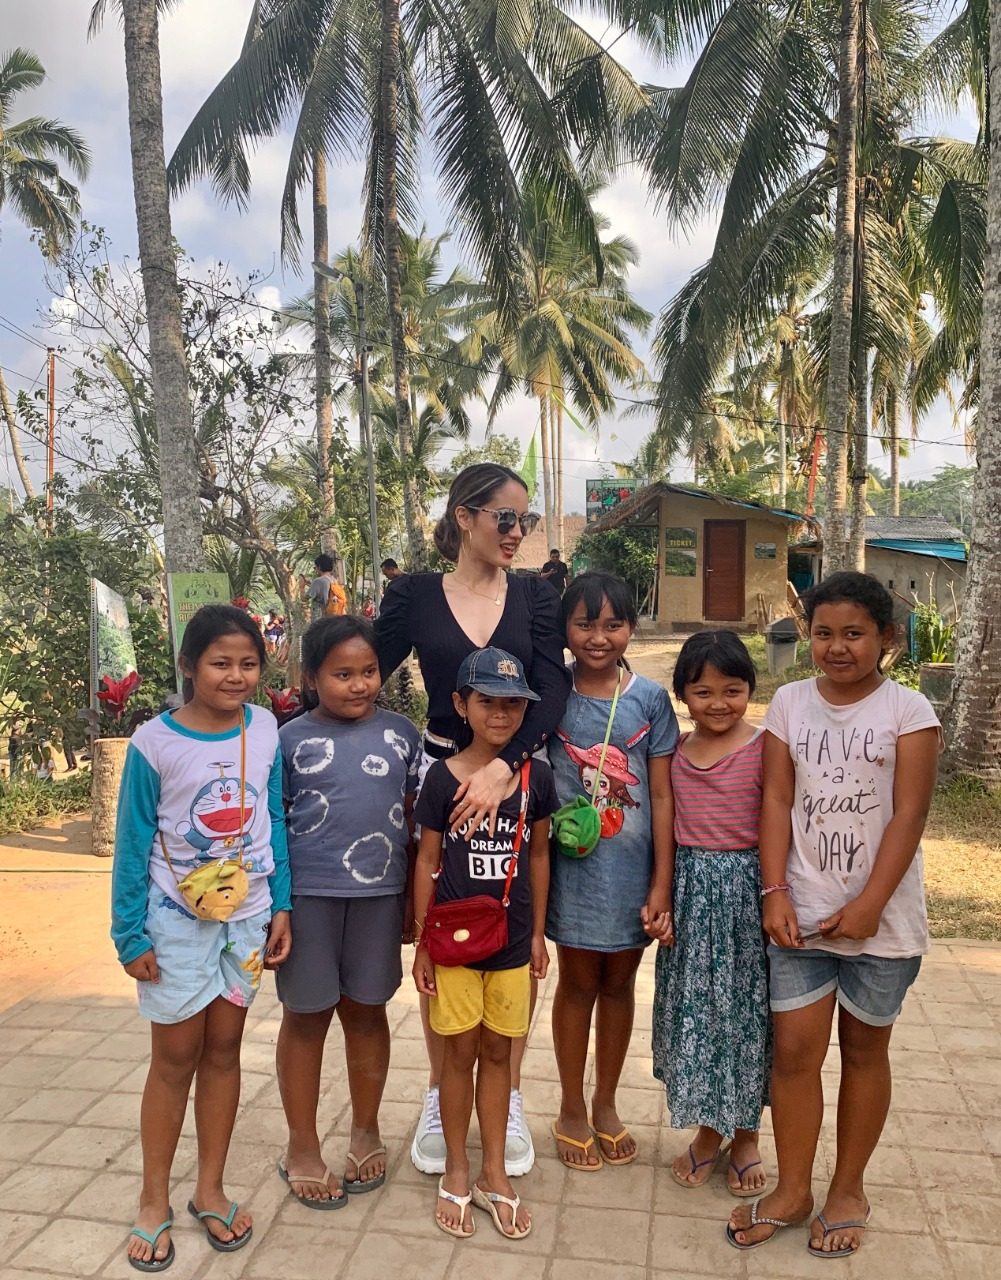 Interacting with the kids of Bali.